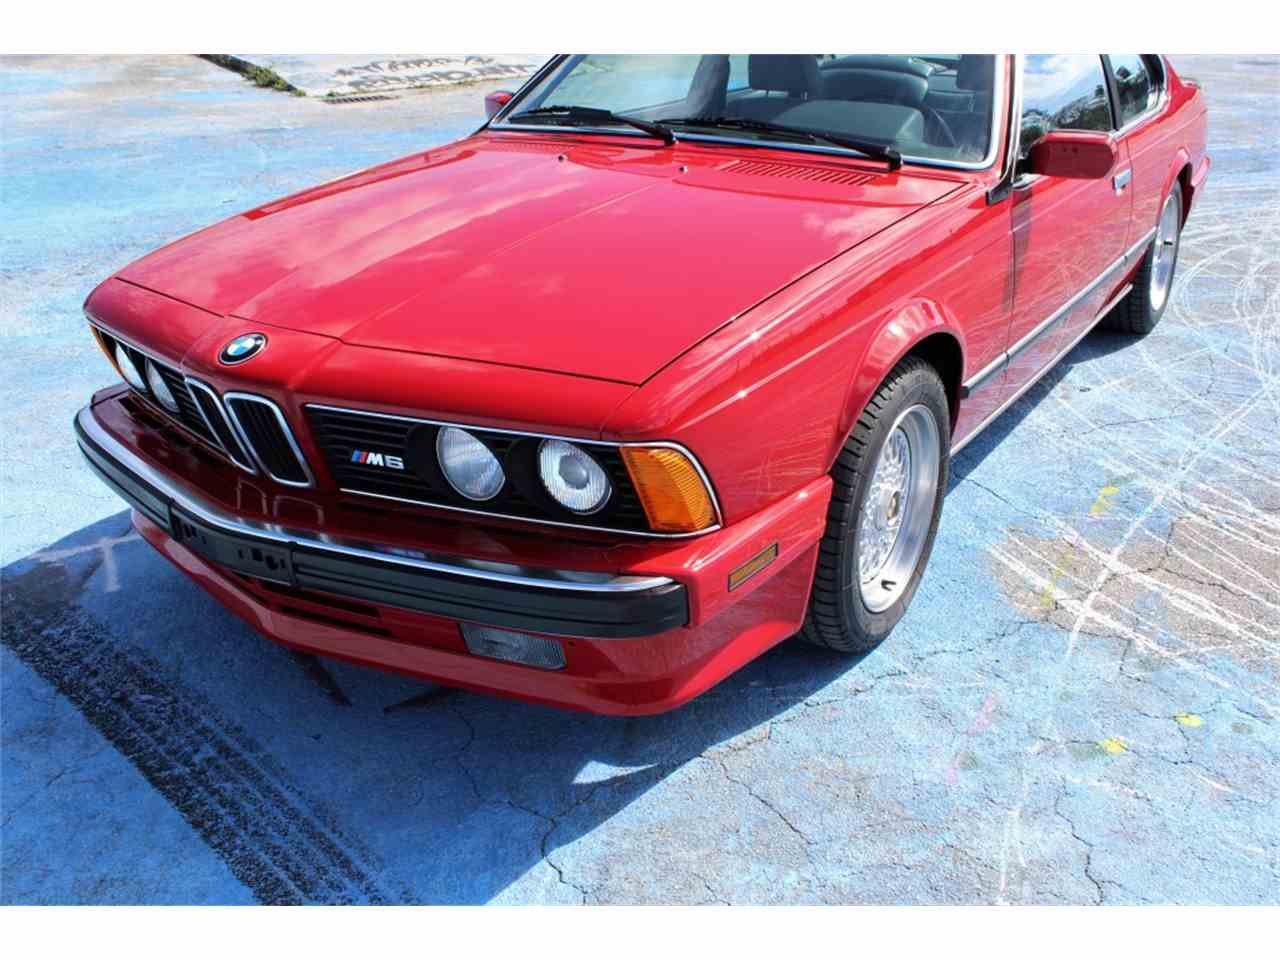 Large Picture of 1988 BMW M6 located in Florida Offered by Auto Source Group LLC - N95L